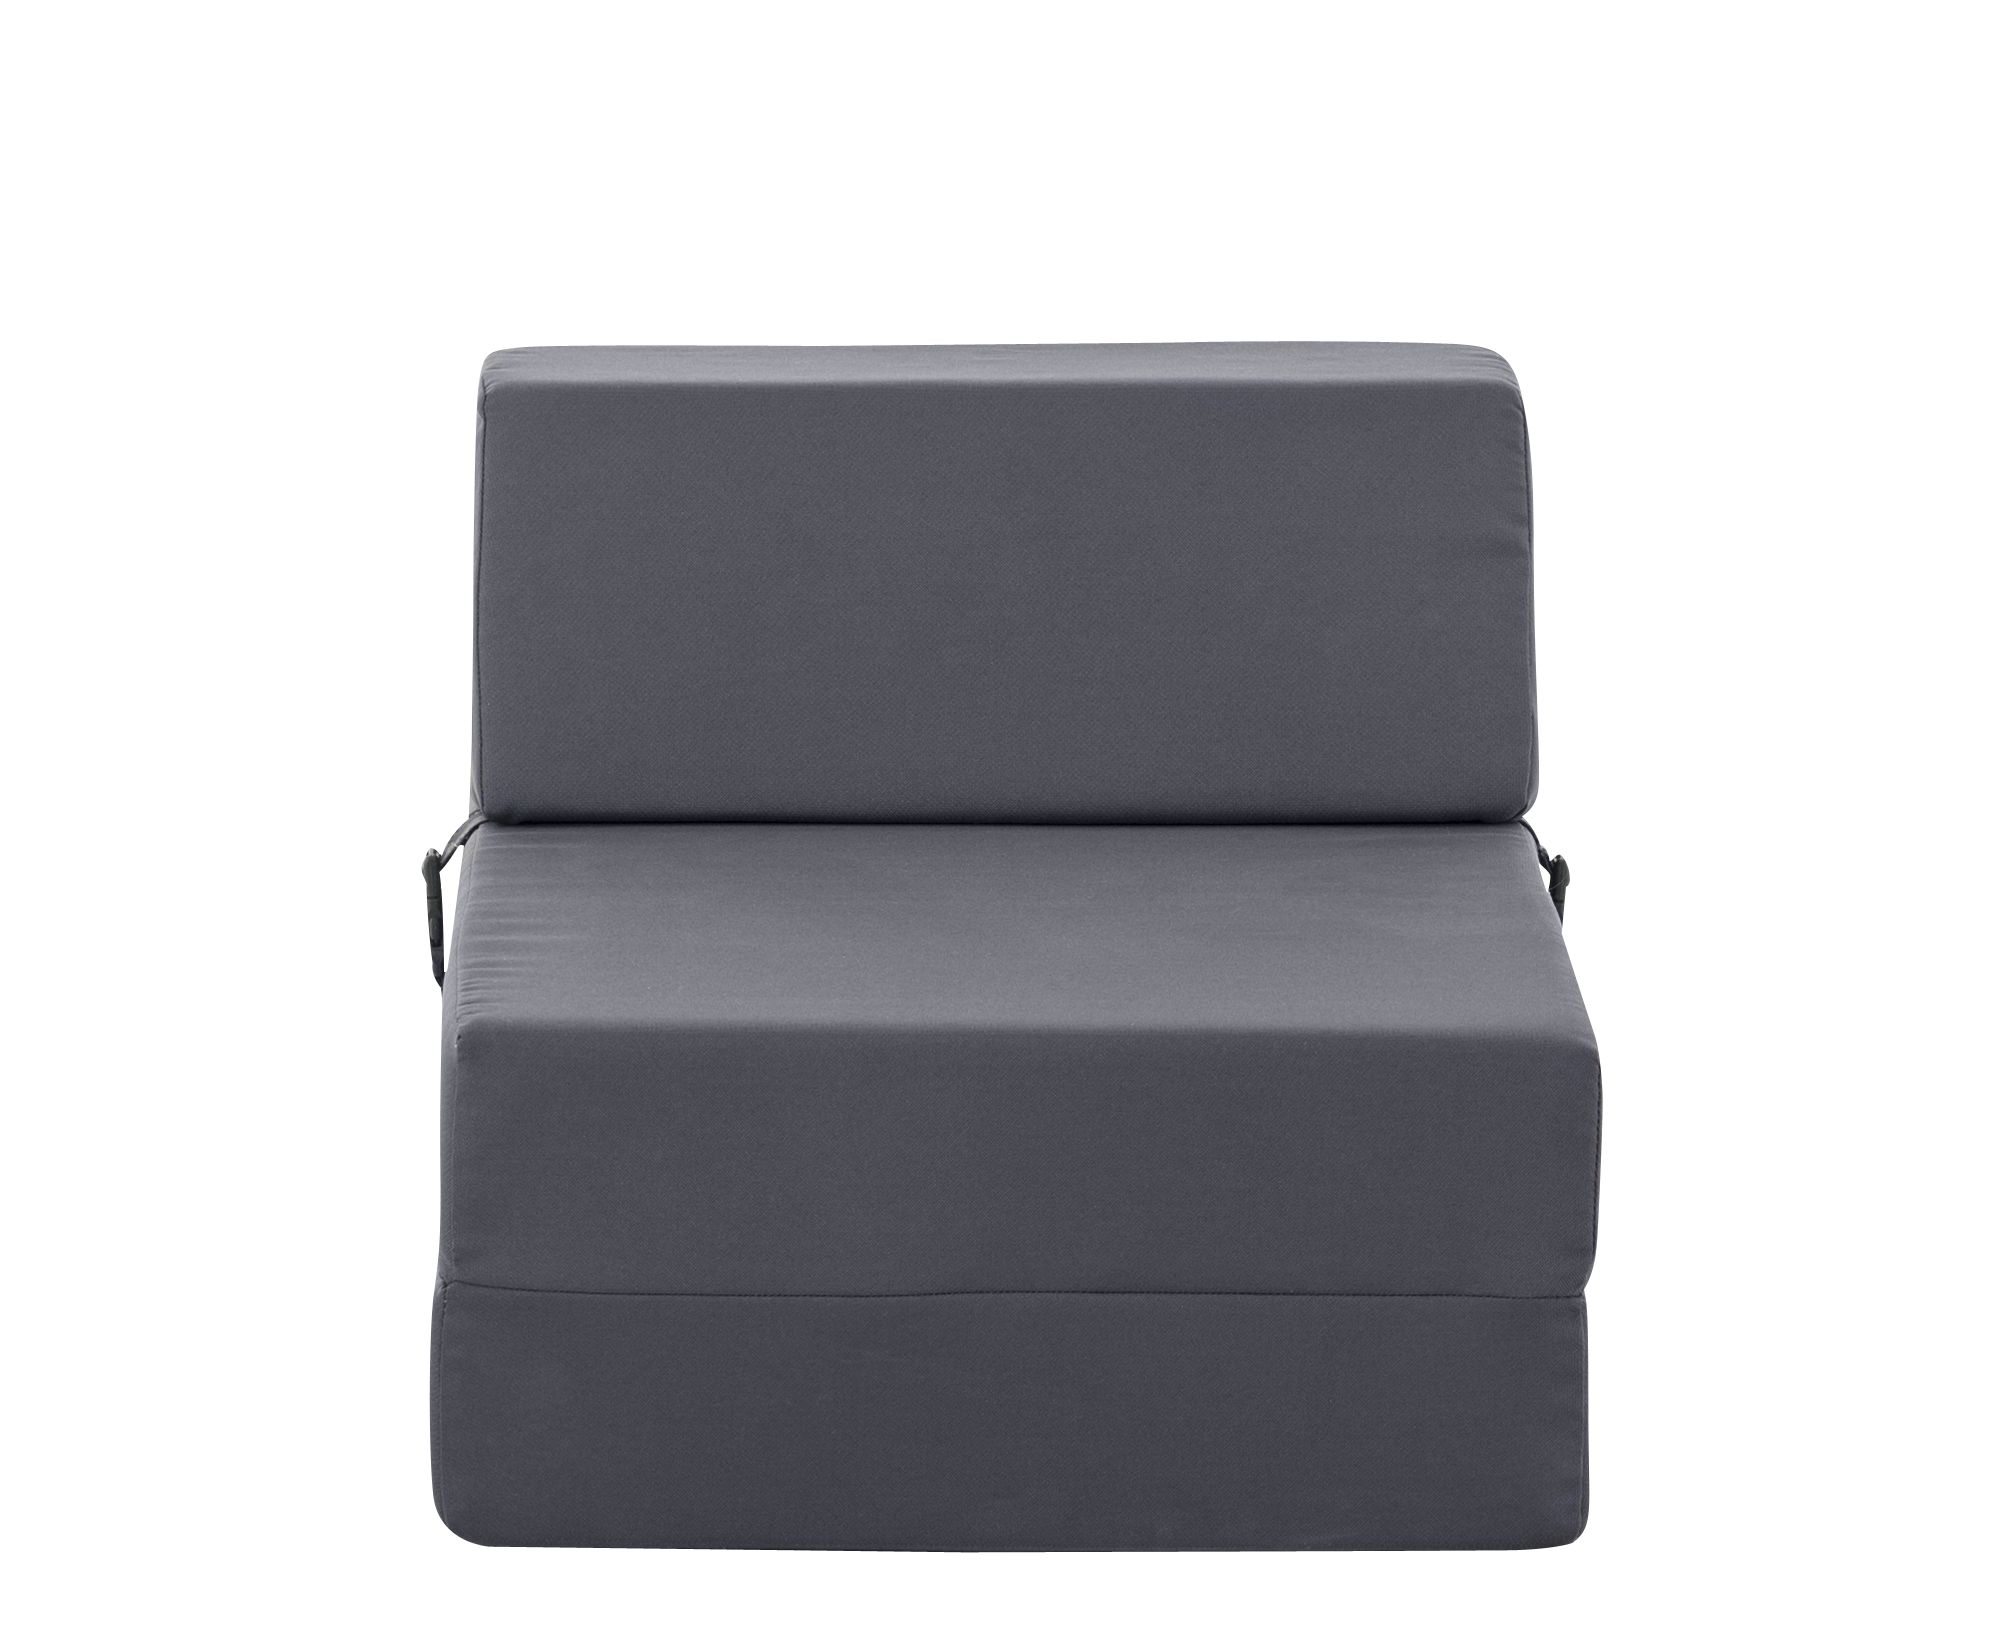 Chauffeuse 1 place tissu gris anthracite